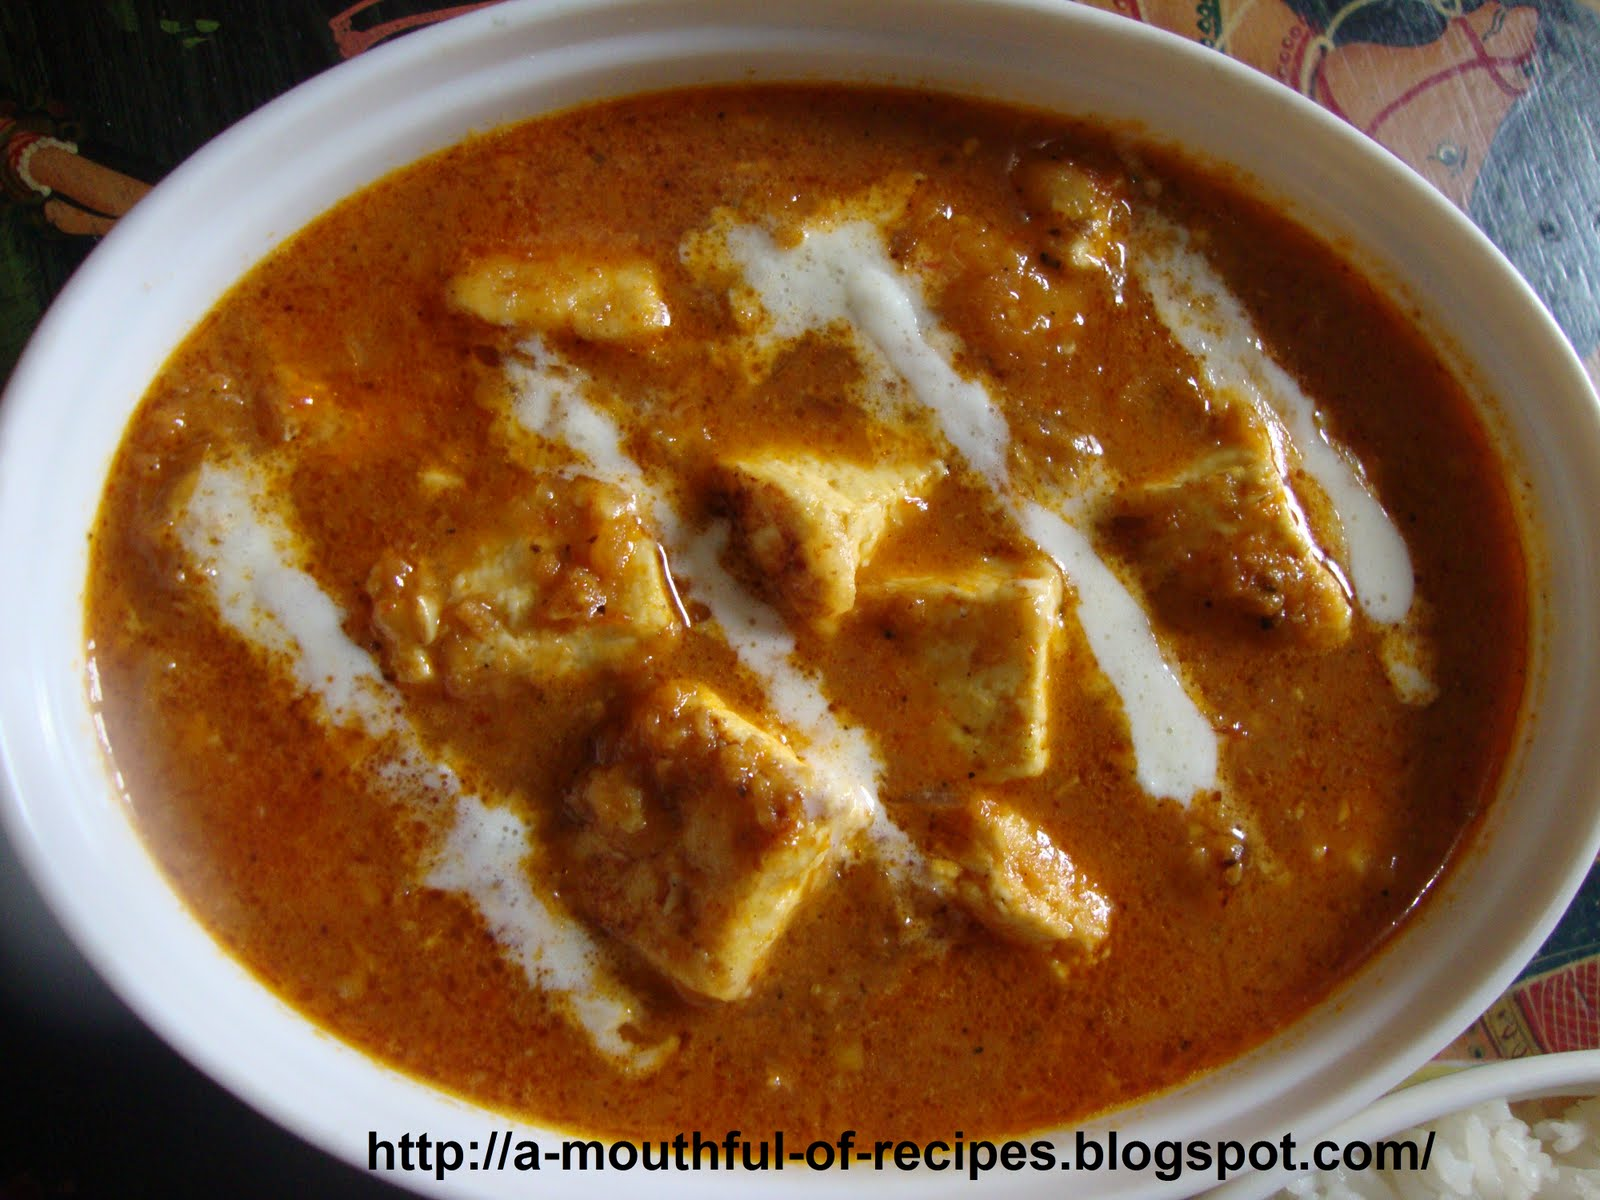 Mouthful Of Recipes: Paneer In Spicy And Rich Tomato Gravy